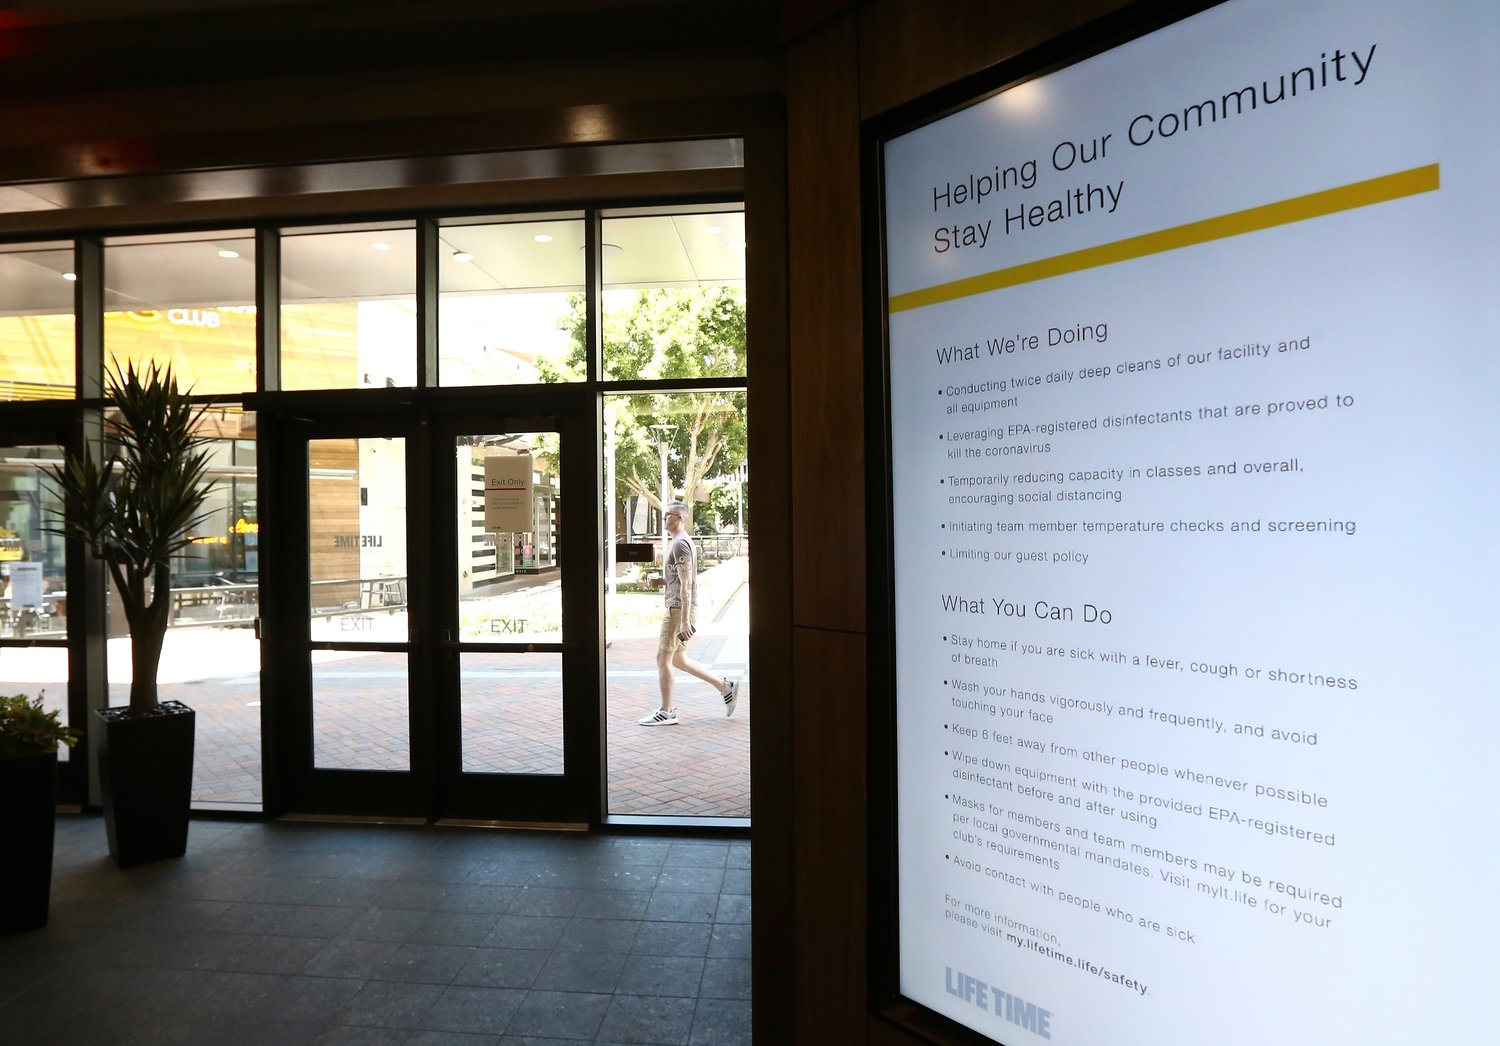 Posted signs remind clients of the social distancing and hygiene rules at Life Time health club as it remains open even as Arizona Gov. Doug Ducey has issued an executive order for all gyms to close due to the surge in coronavirus cases in Arizona Thursday, July 2, 2020, in Phoenix.